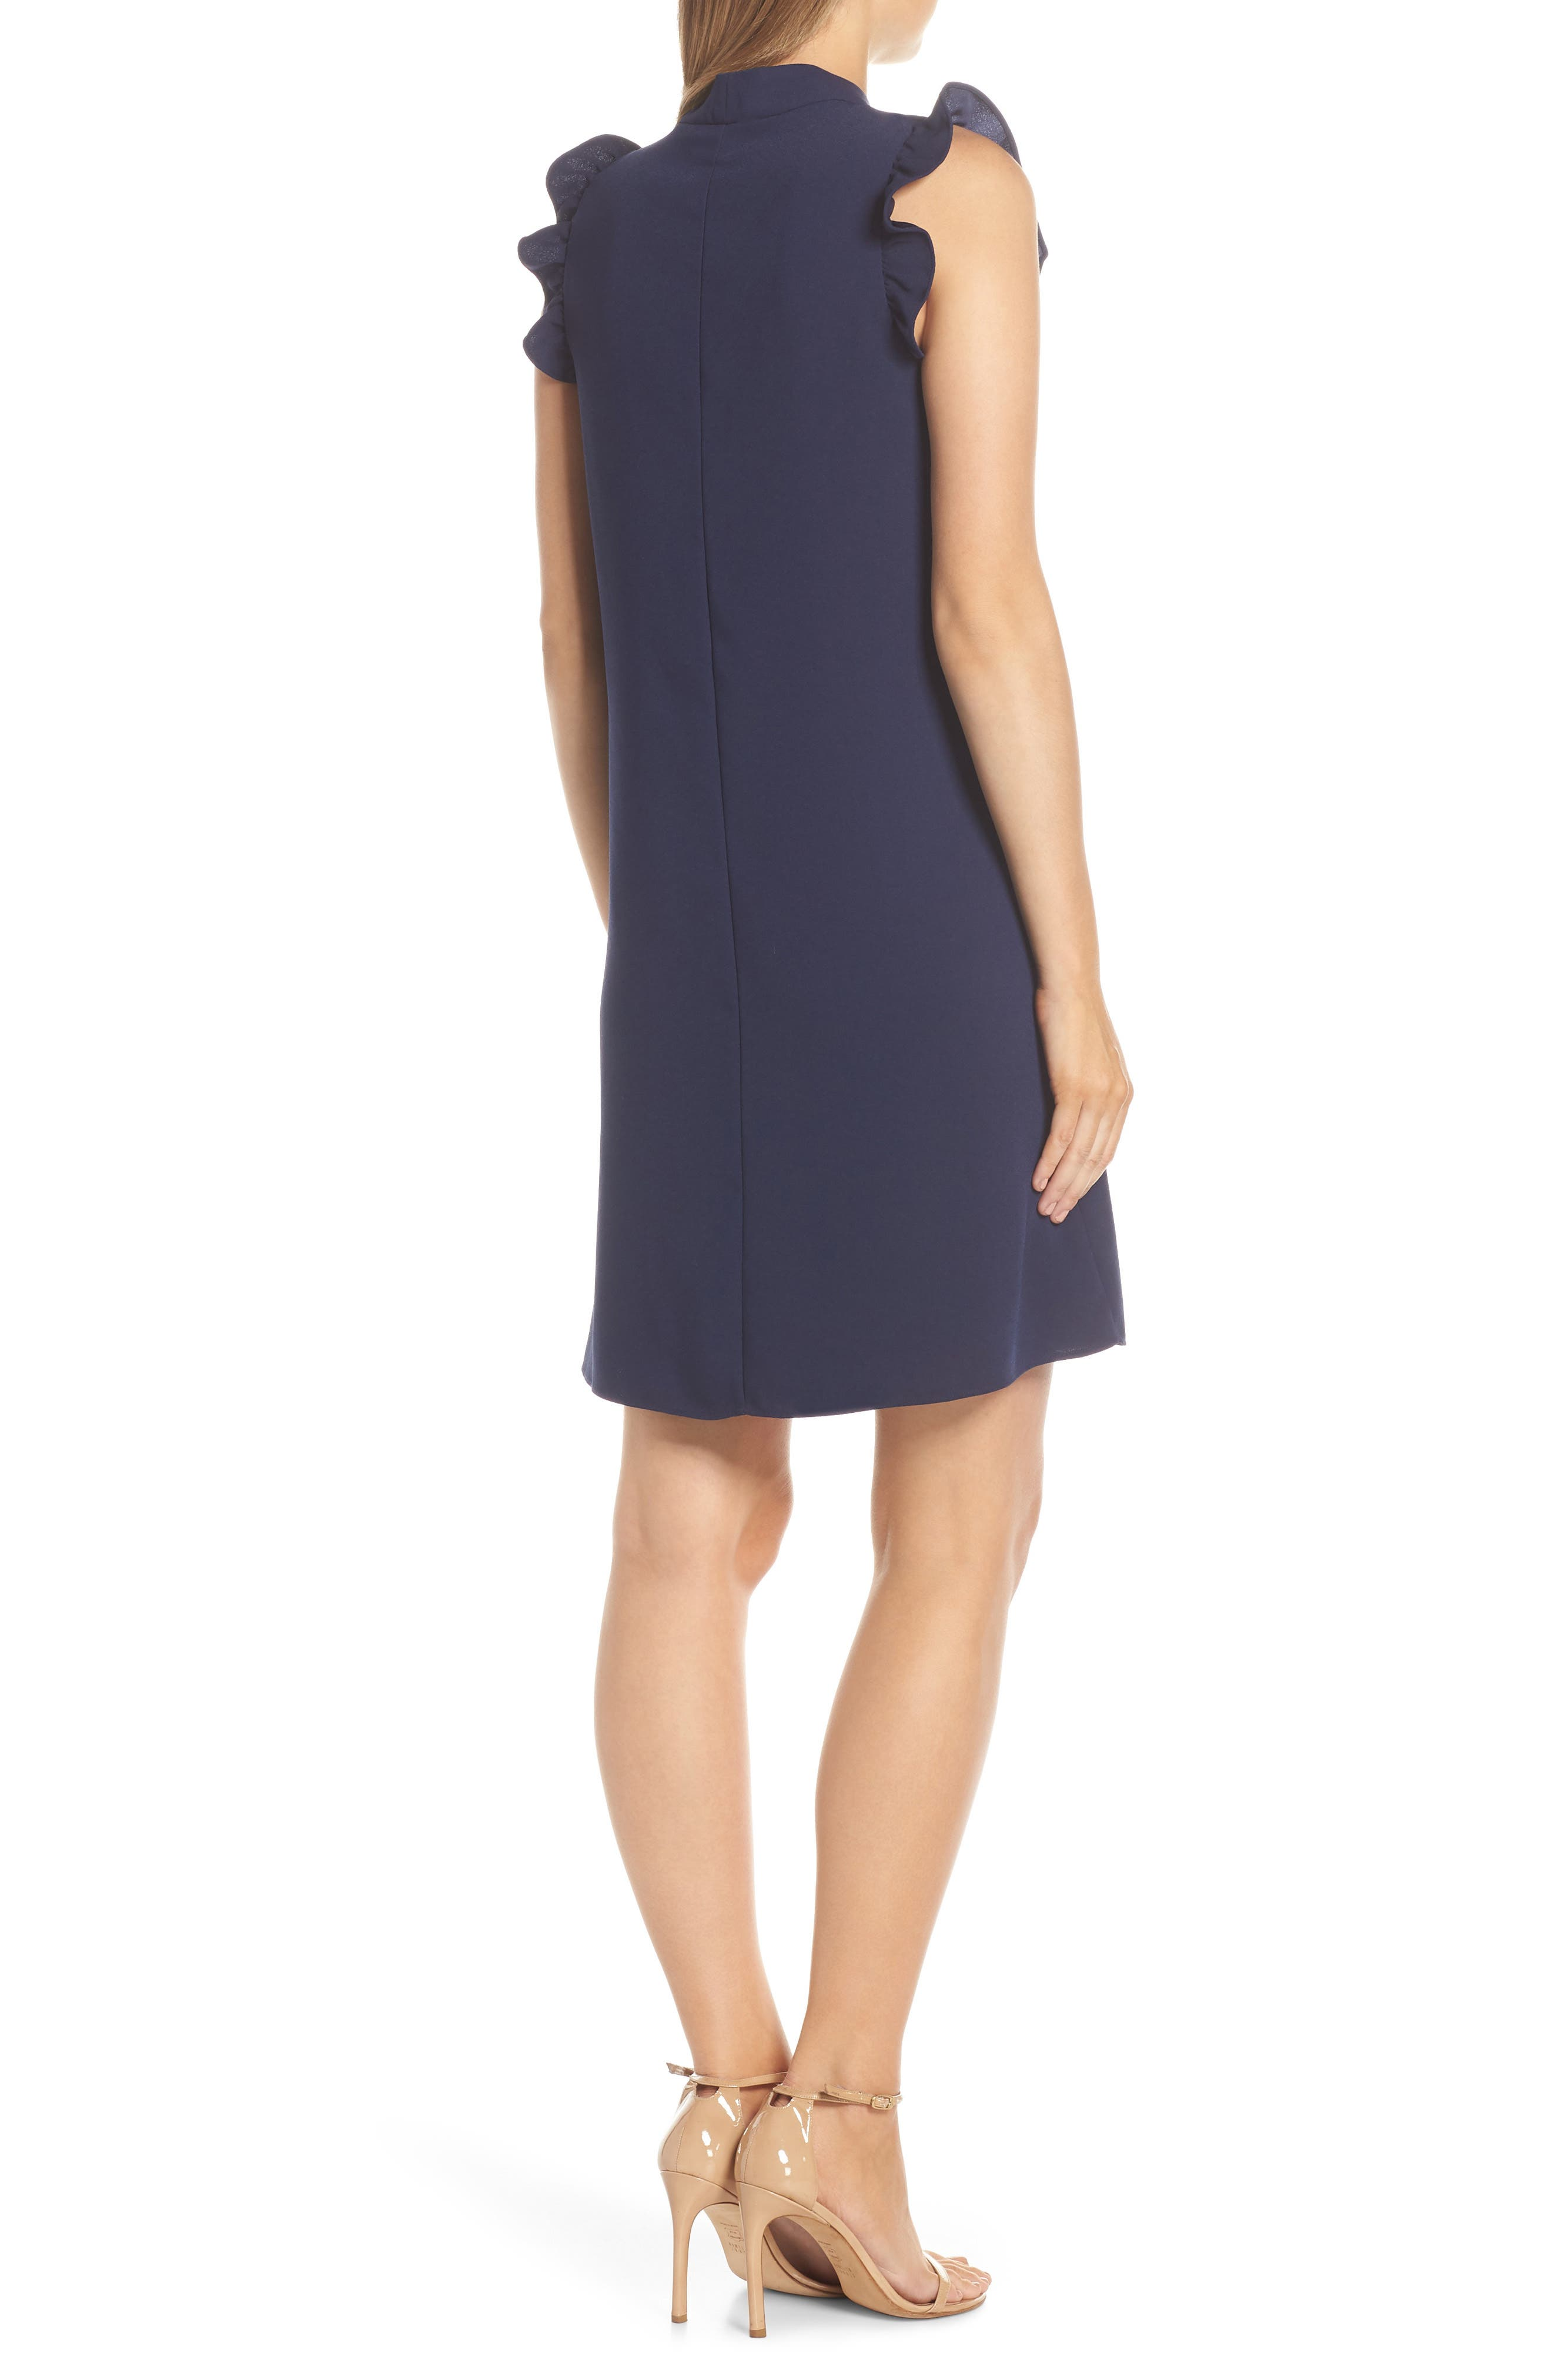 LILLY PULITZER<SUP>®</SUP>, Adalee Shift Dress, Alternate thumbnail 2, color, TRUE NAVY